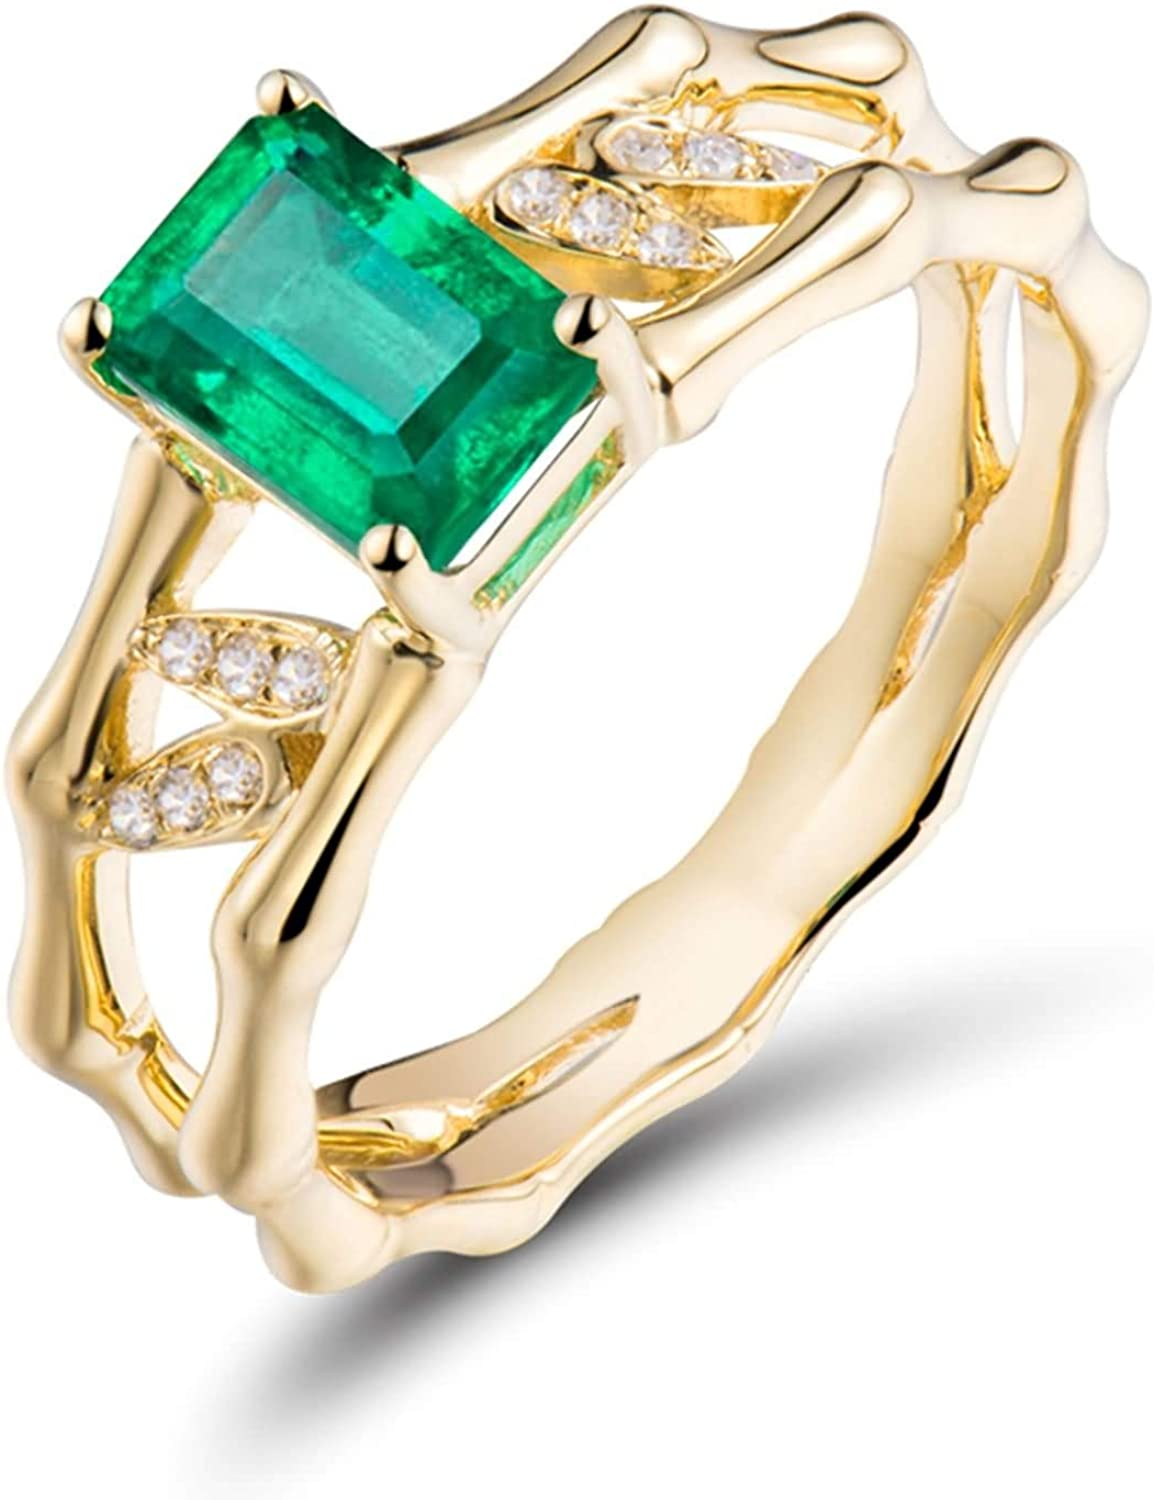 AMDXD New arrival Gold Ring 18K Real Engagement for Women Same day shipping 1.05ct